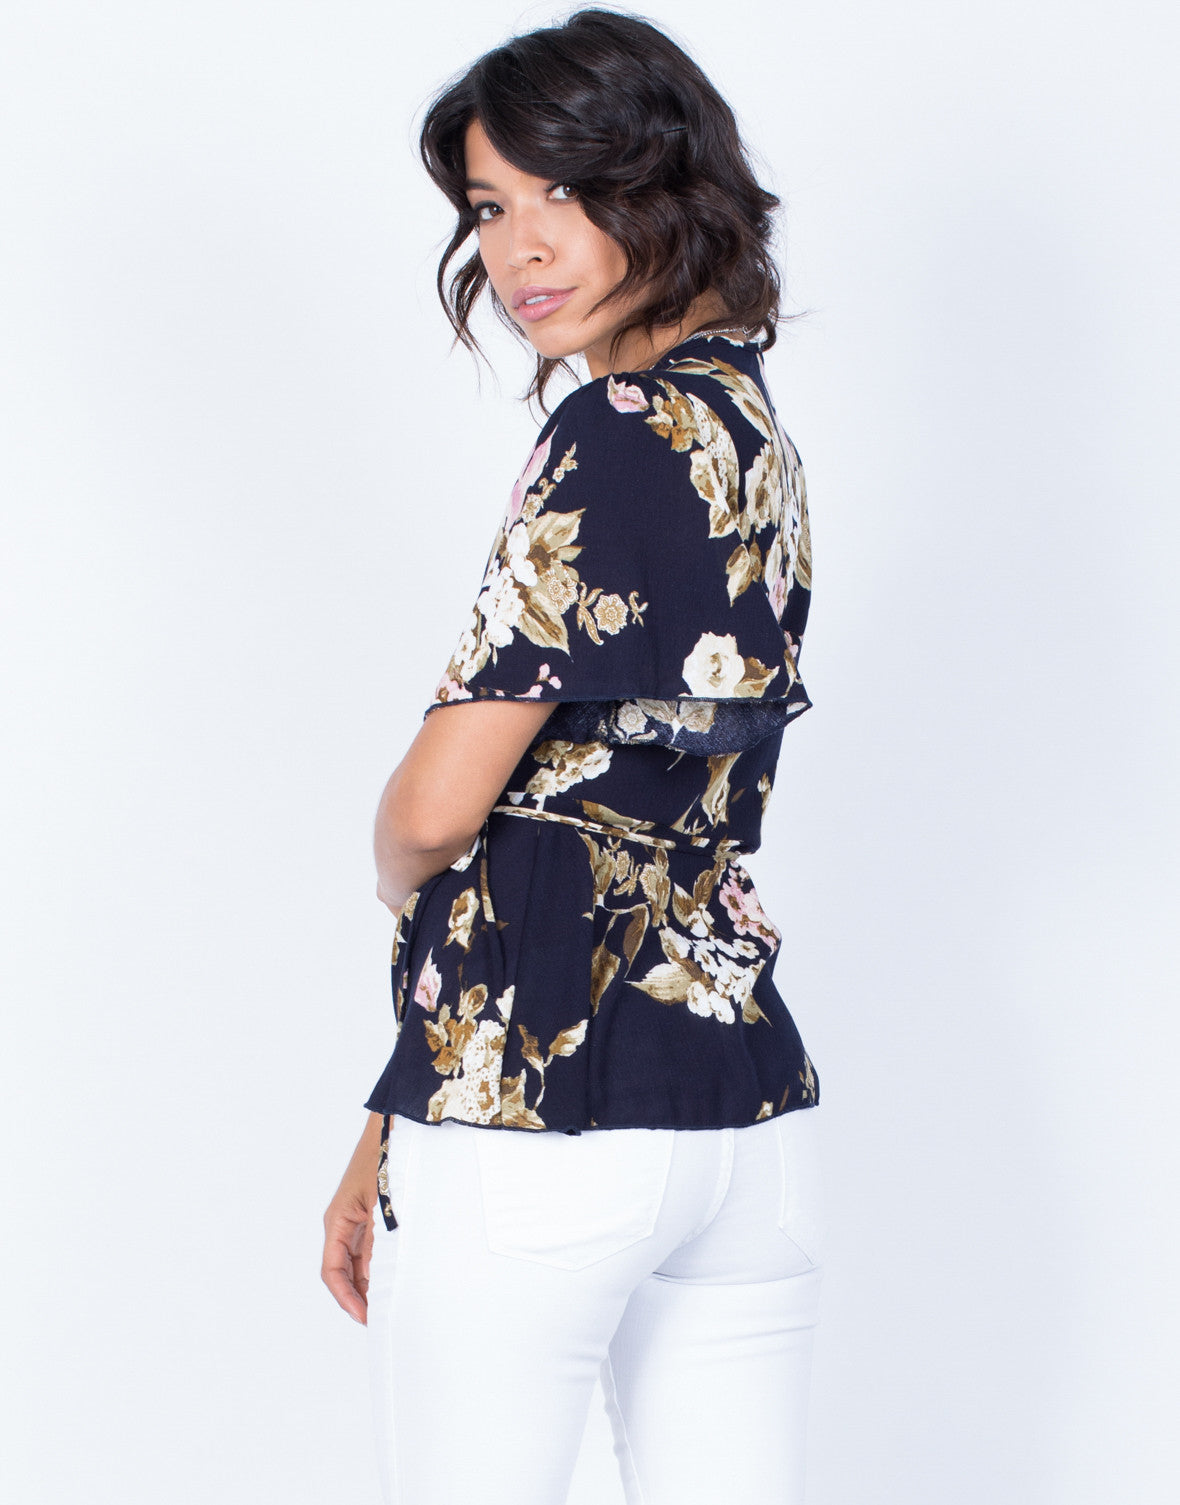 Back View of Wrapped in Florals Top